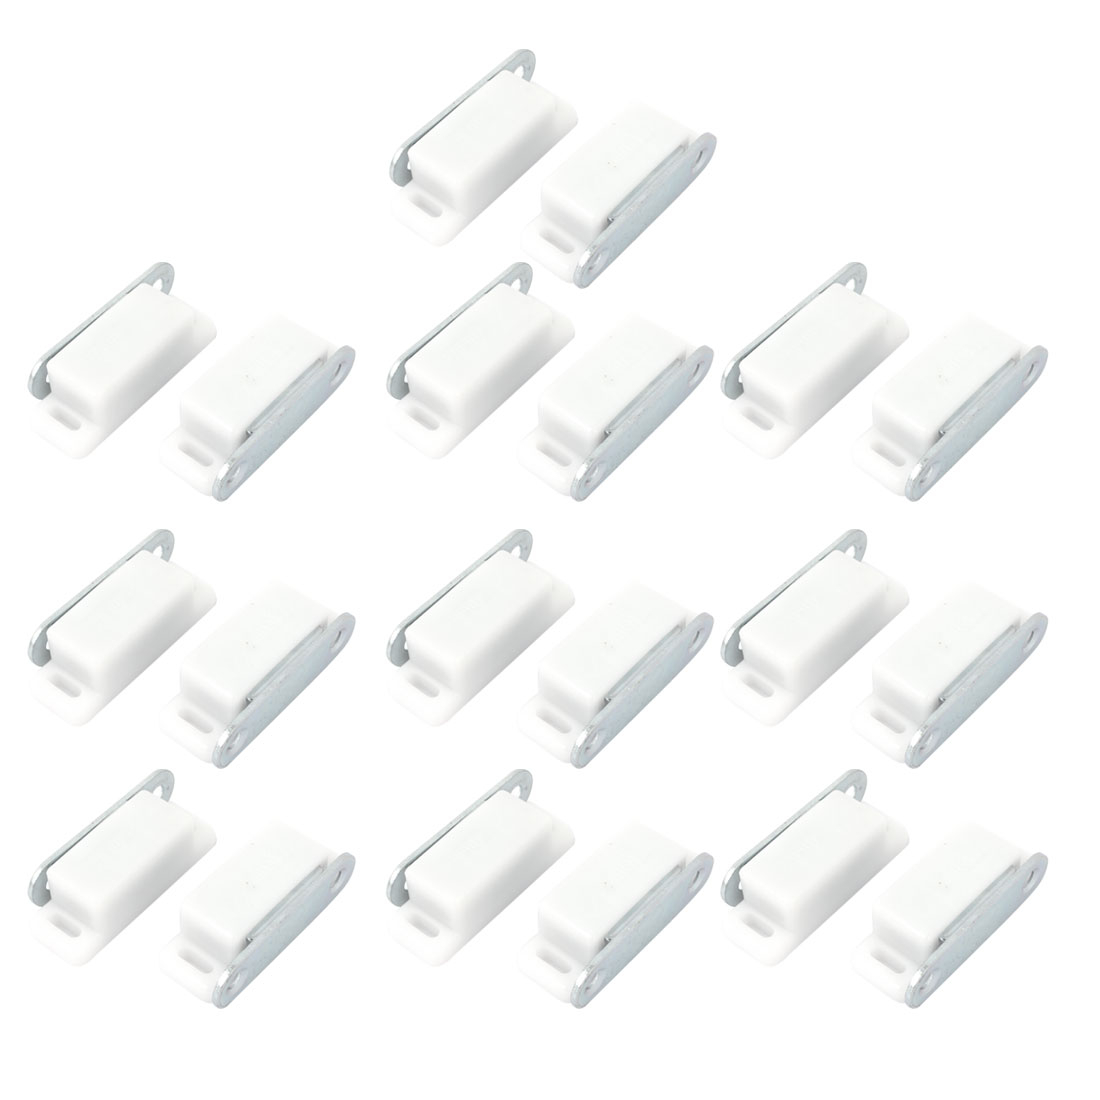 "20 Pcs Cupboard Cabinet Doors Plastic Case Metal Plate Magnetic Catch Latch White 2"" Length"